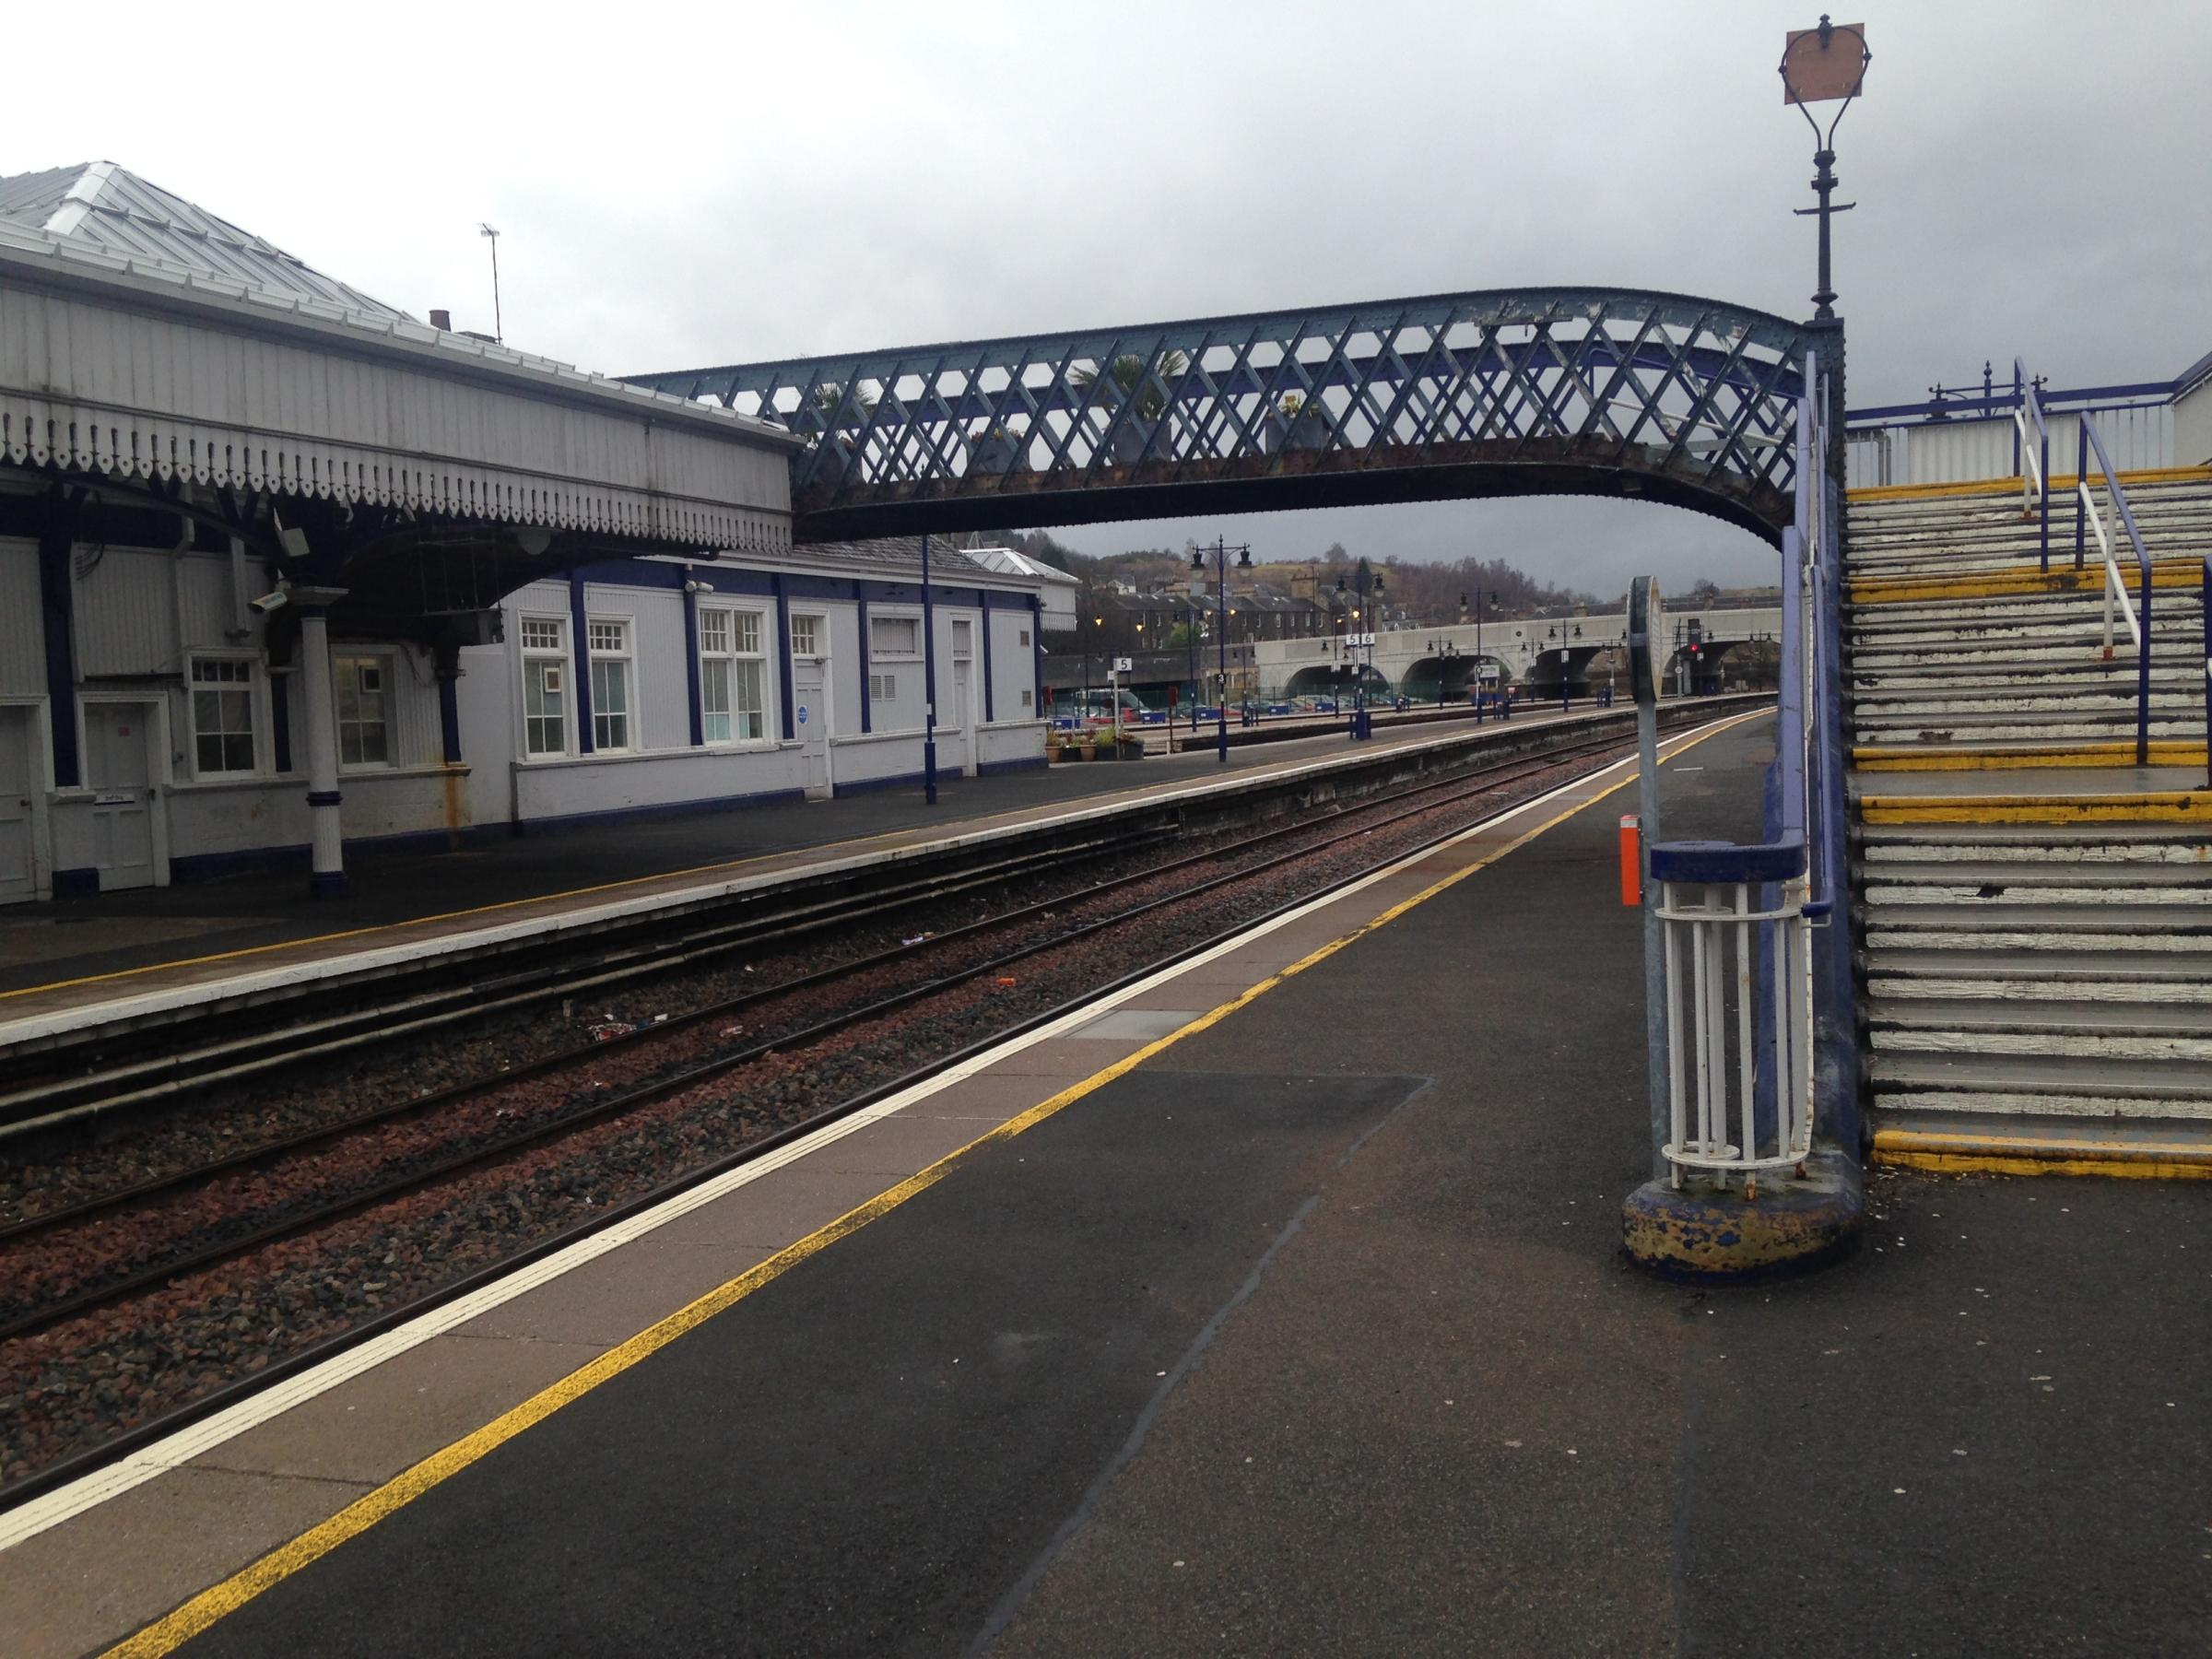 CHANGES AFOOT BRIDGE: Work will begin on the Platform 9-10 crossing. Image courtesy of Network Rail